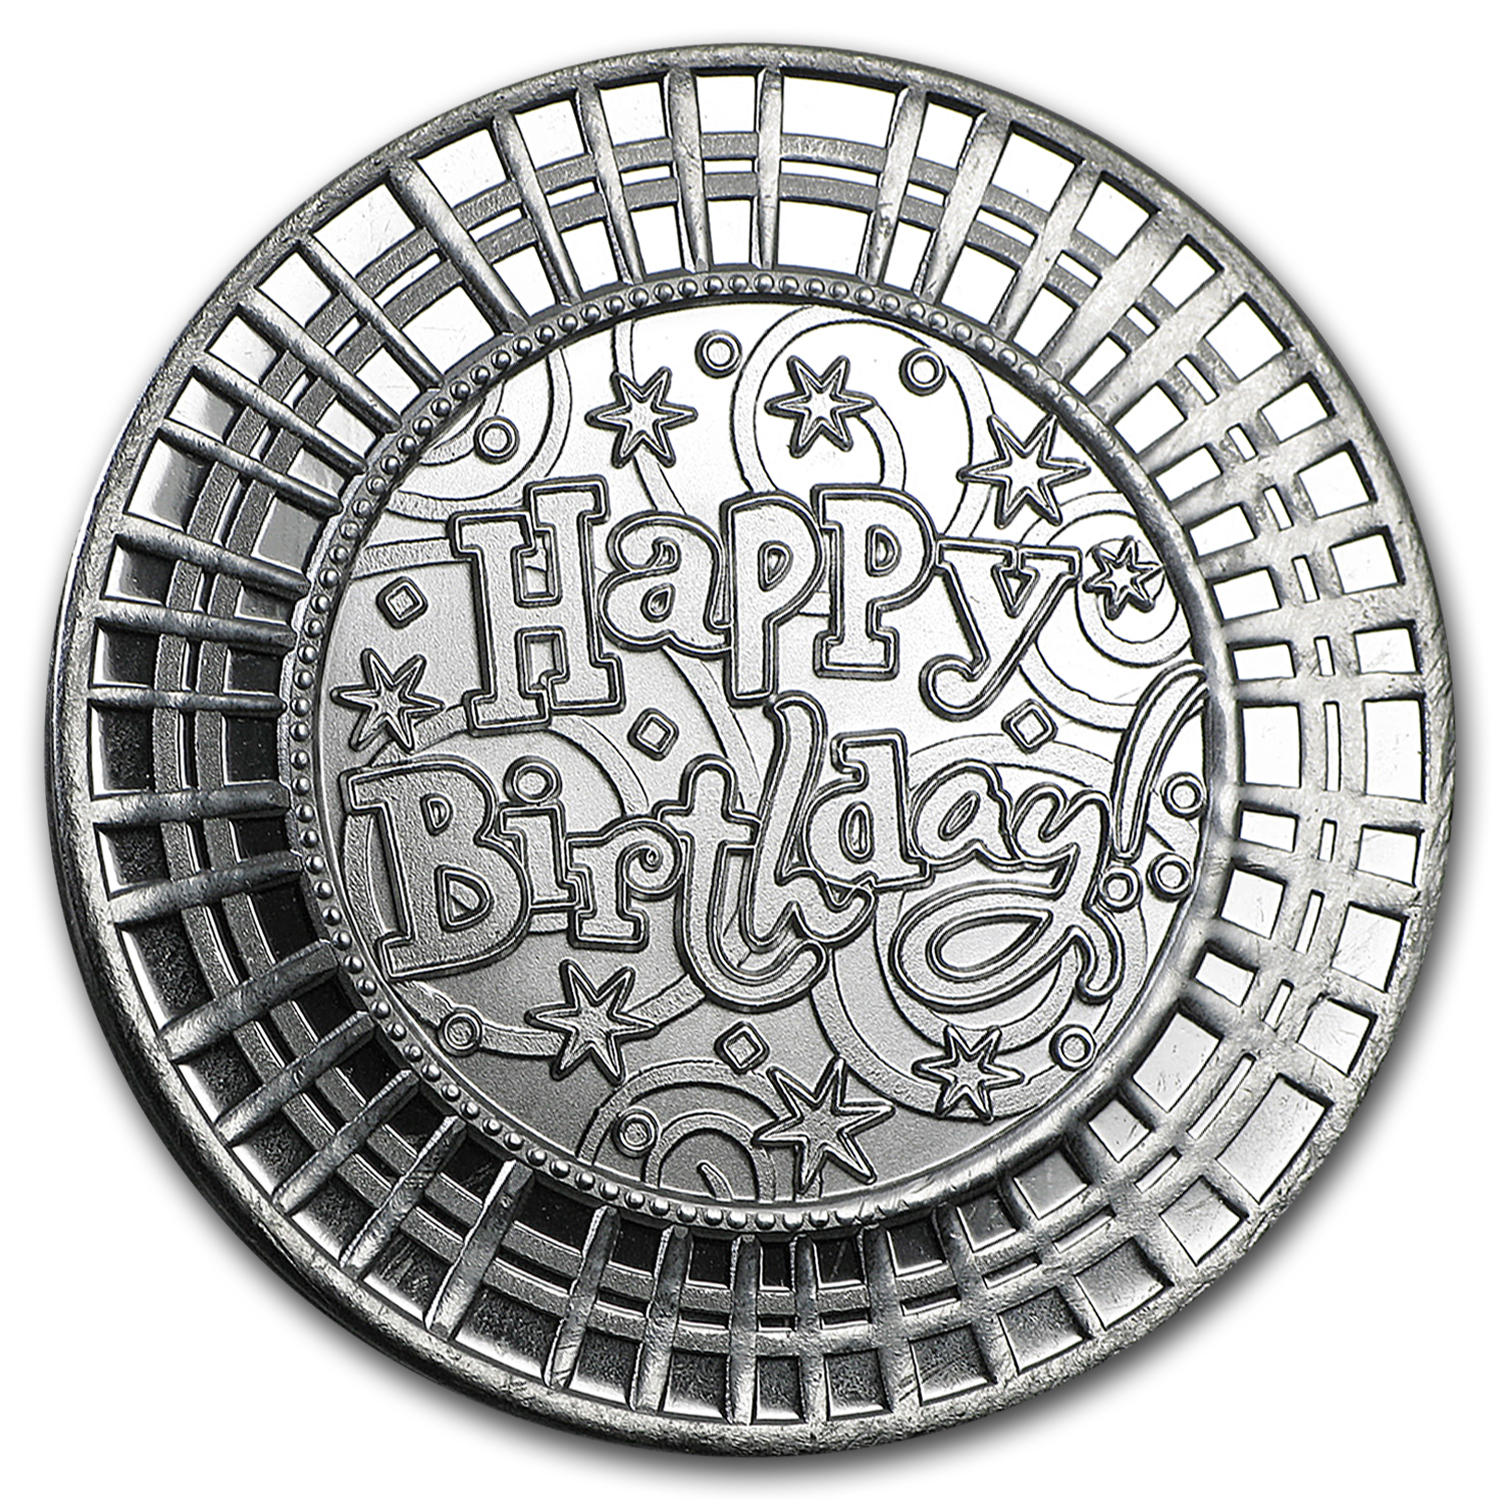 1 oz Silver Round - Happy Birthday Mosaic